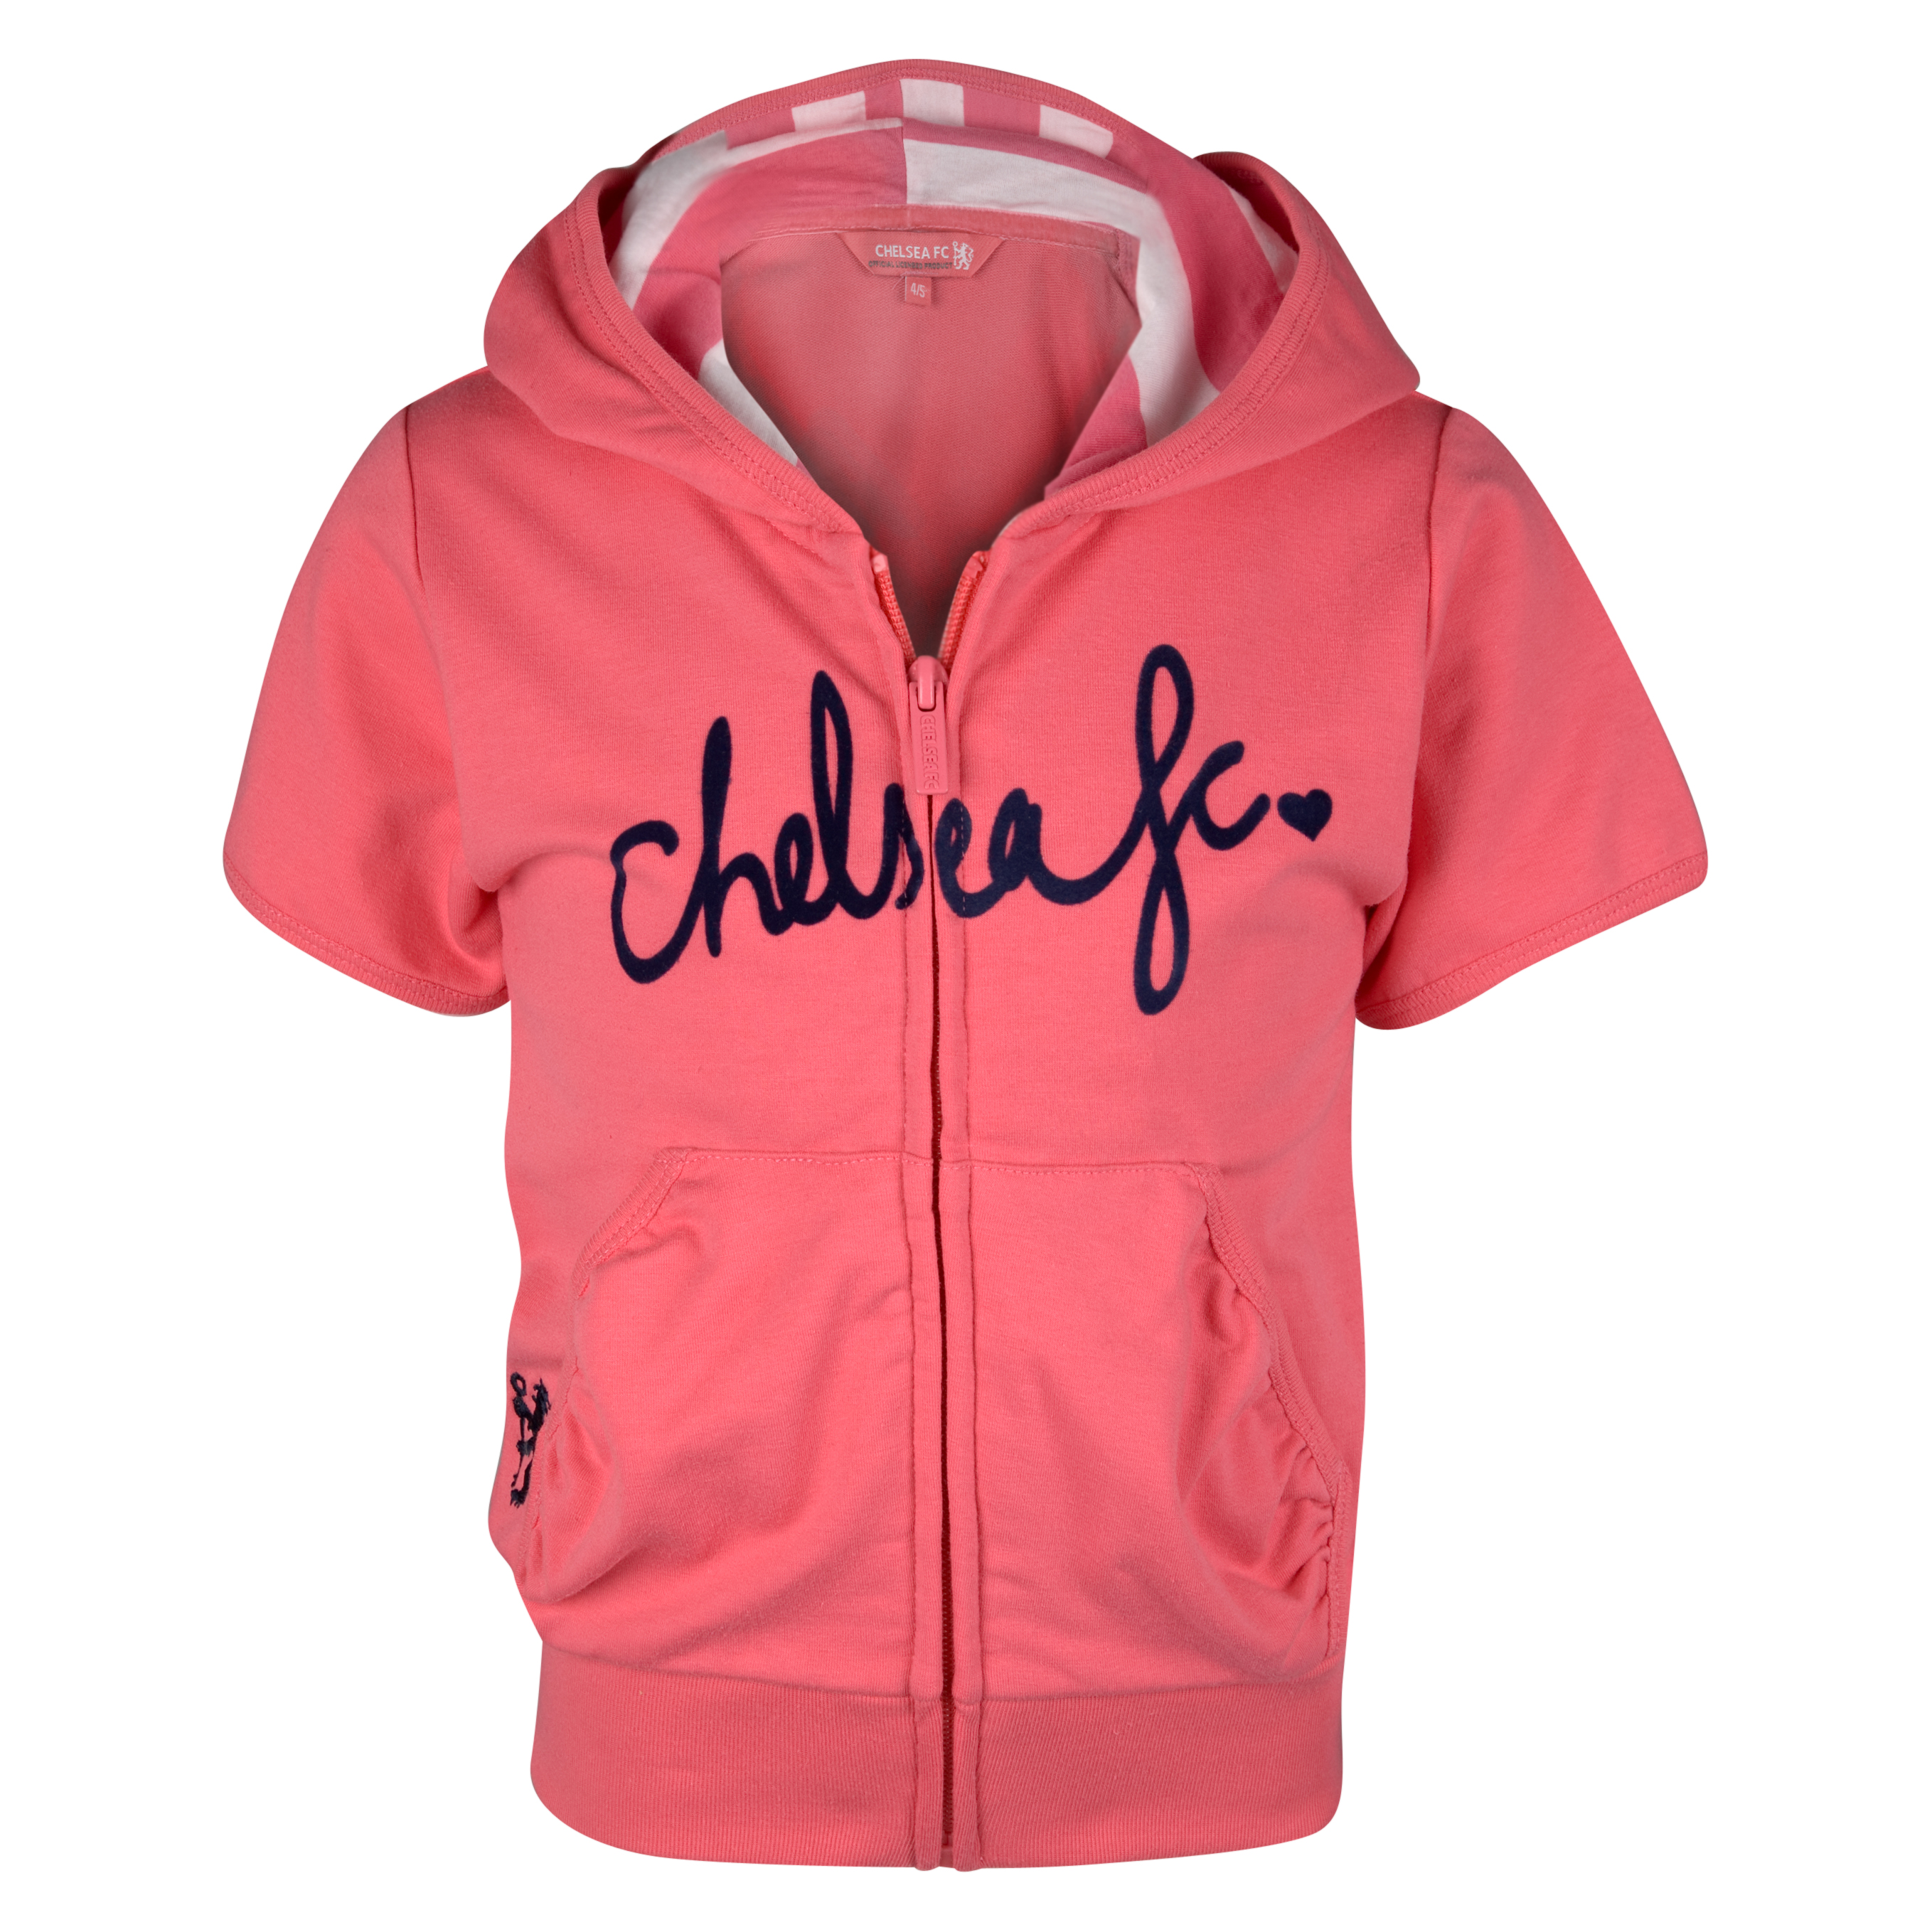 Chelsea Short Sleeve Hoodie - Infant Girls - Hot Coral